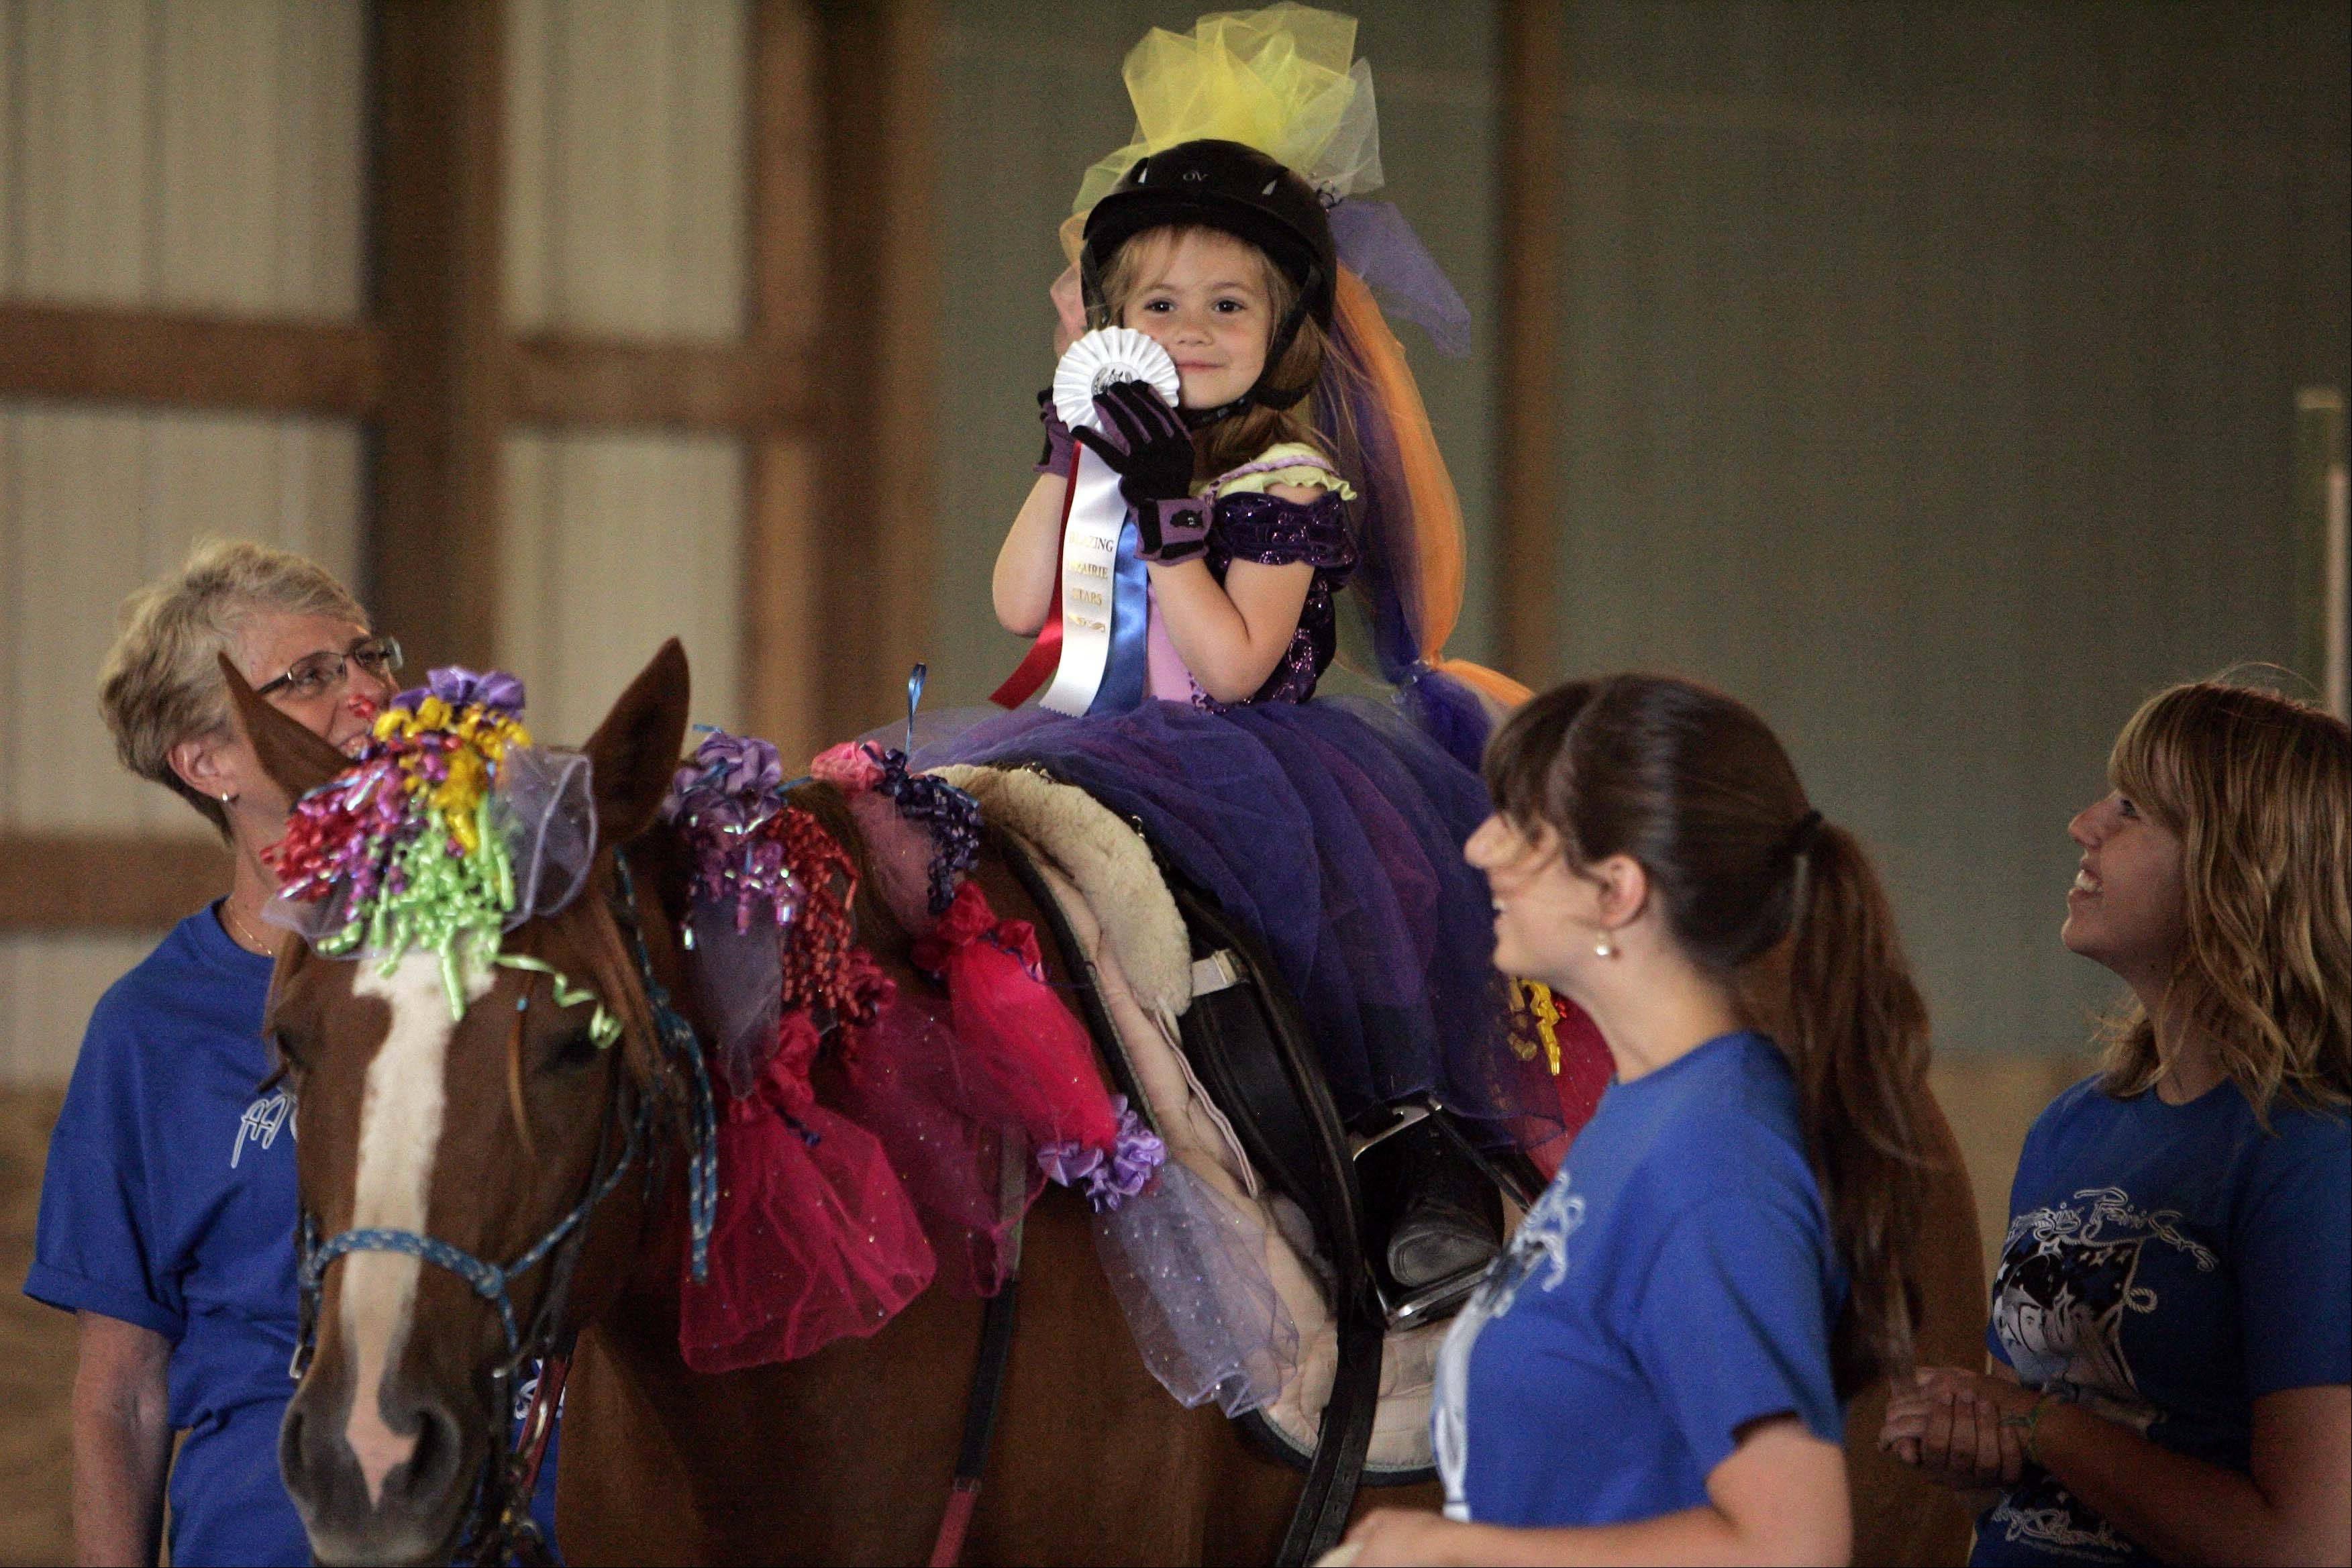 Dressed as a princess, Madelyn Kennedy, 4, of Batavia, shows off her ribbon for competing in the 2012 Star Riders Celebration. The facility, built in 2001, provides therapeutic riding and hippotherapy sessions to children with special needs.